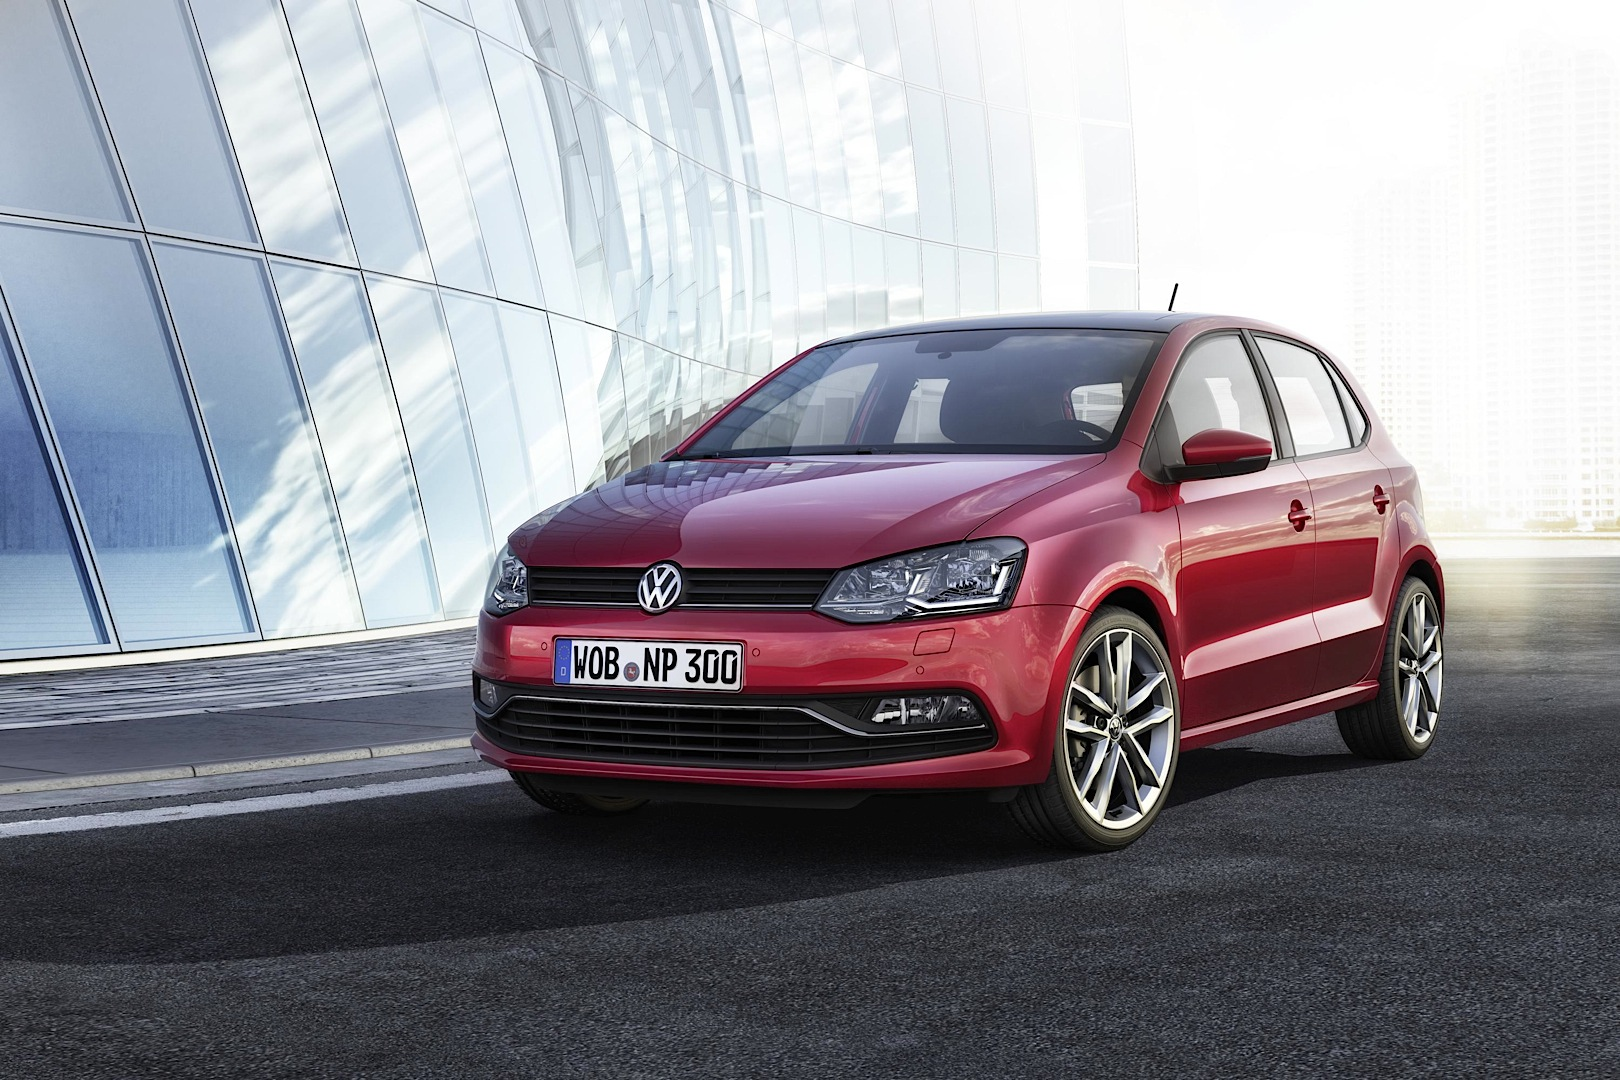 2014 volkswagen polo facelift exterior changes autoevolution. Black Bedroom Furniture Sets. Home Design Ideas